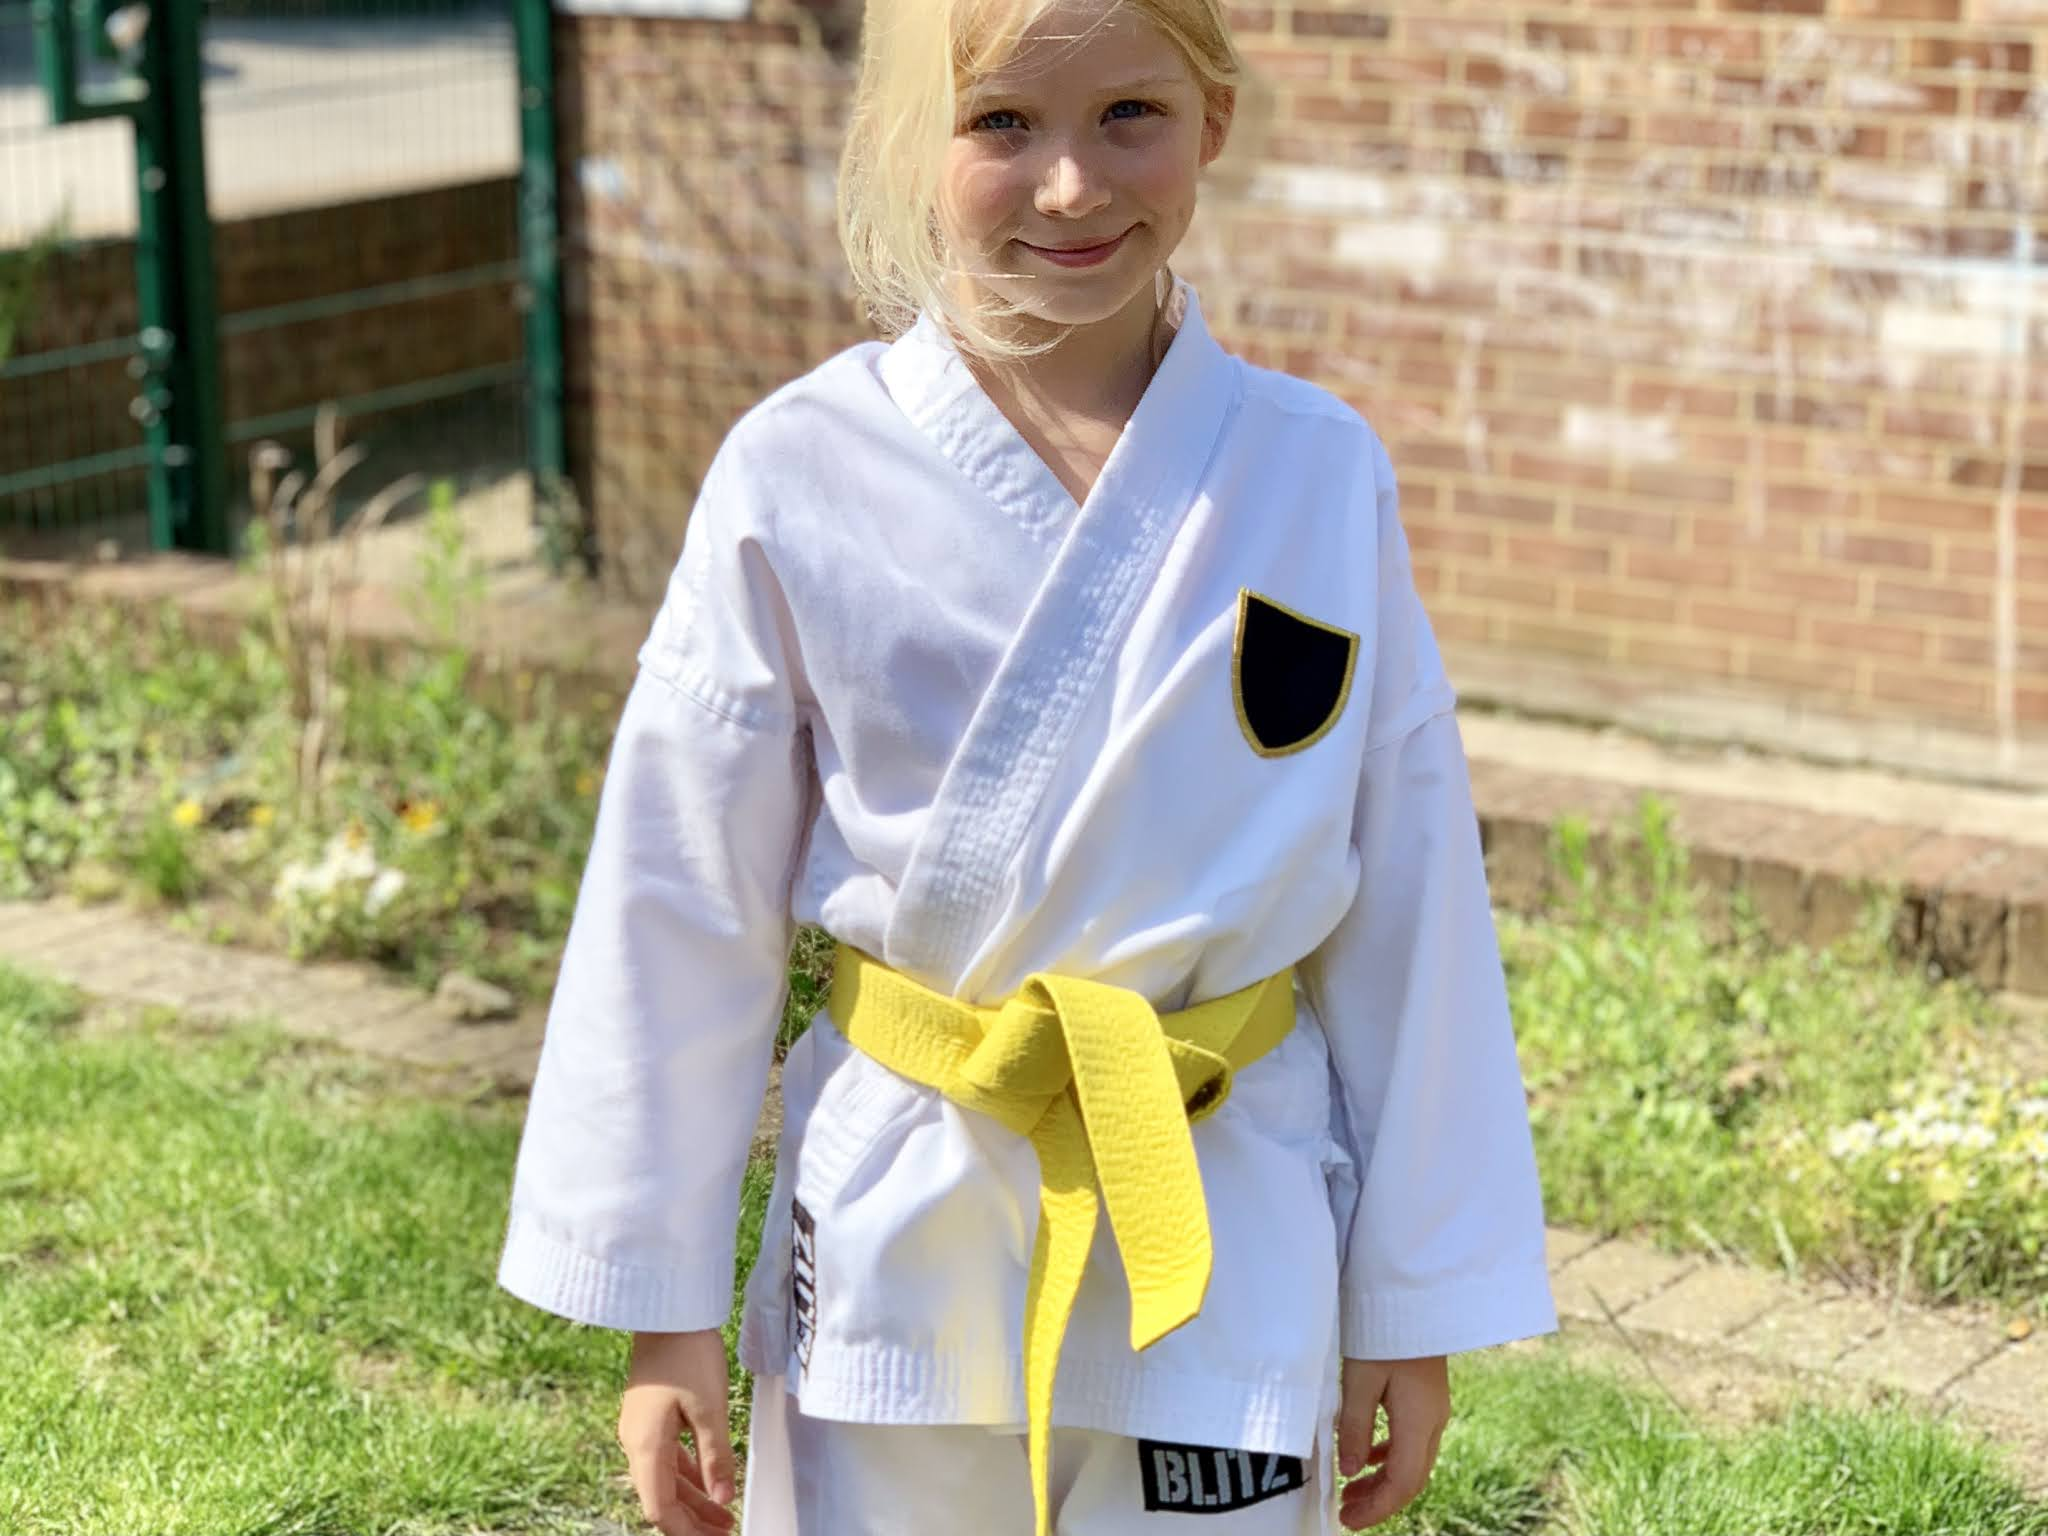 A young girl in a white Karate Gi after getting her yellow belt